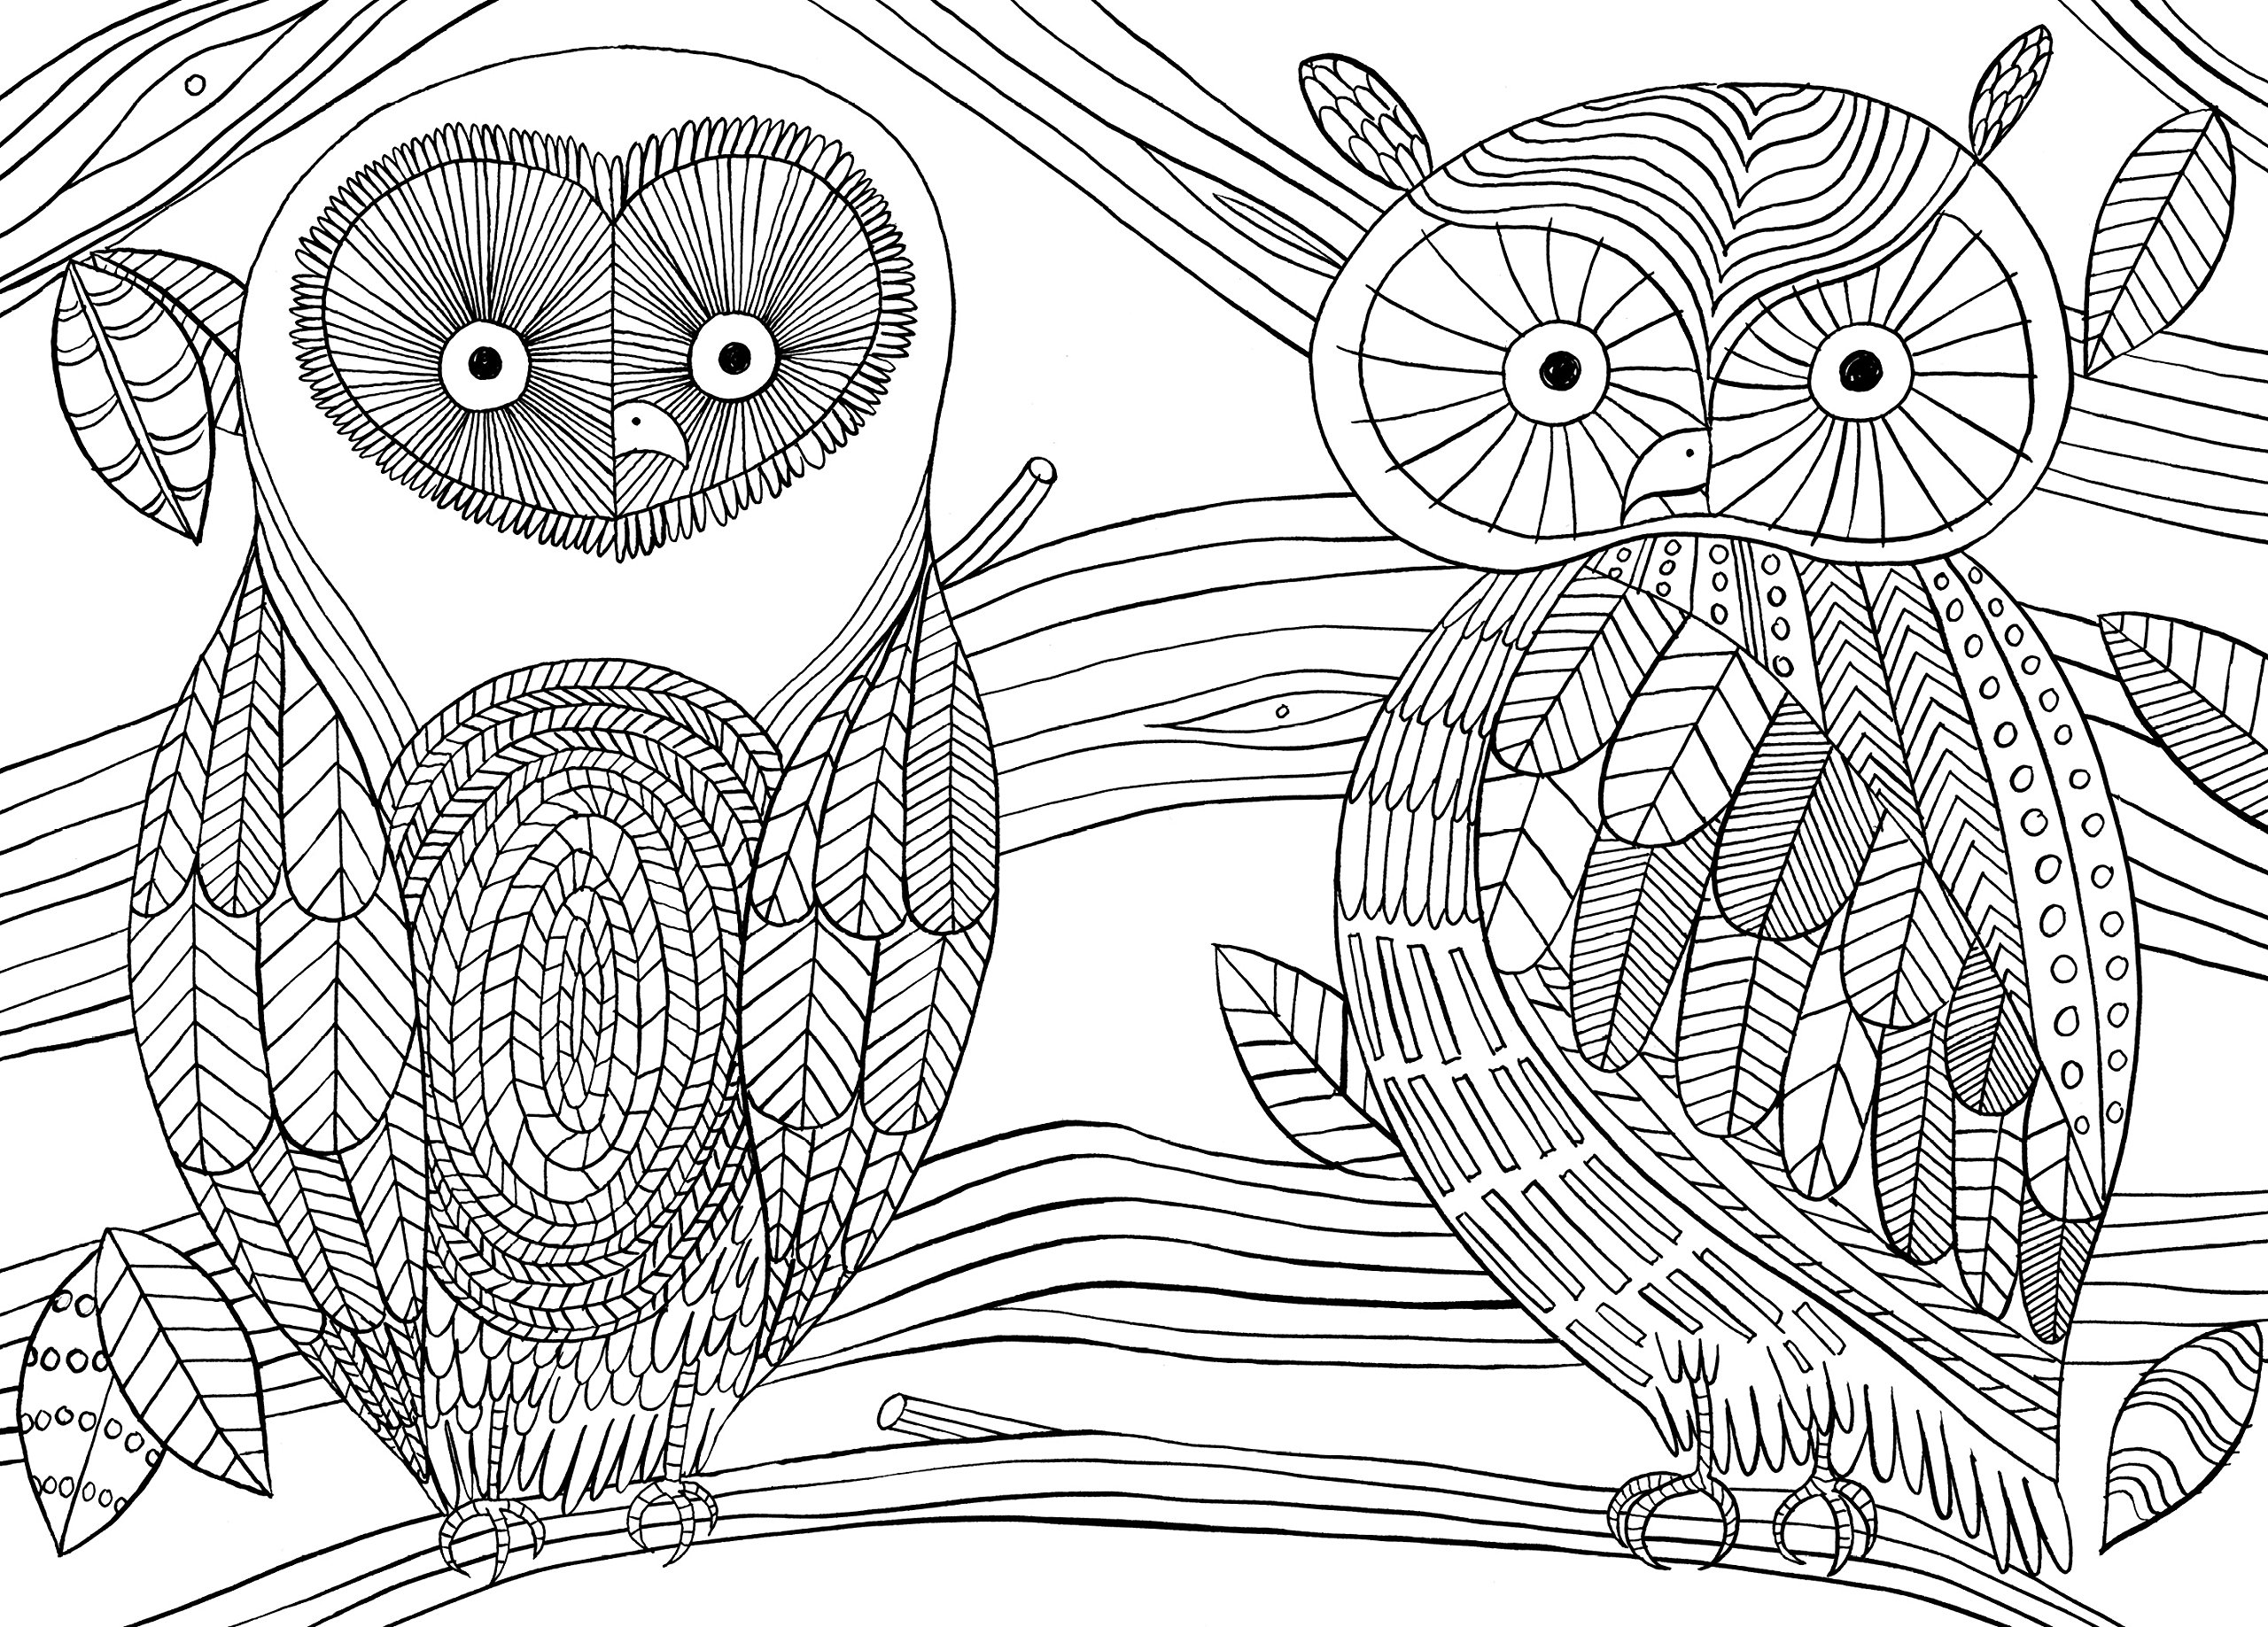 2560x1837 More Mindfulness Colouring Anti Stress Art Therapy For Busy